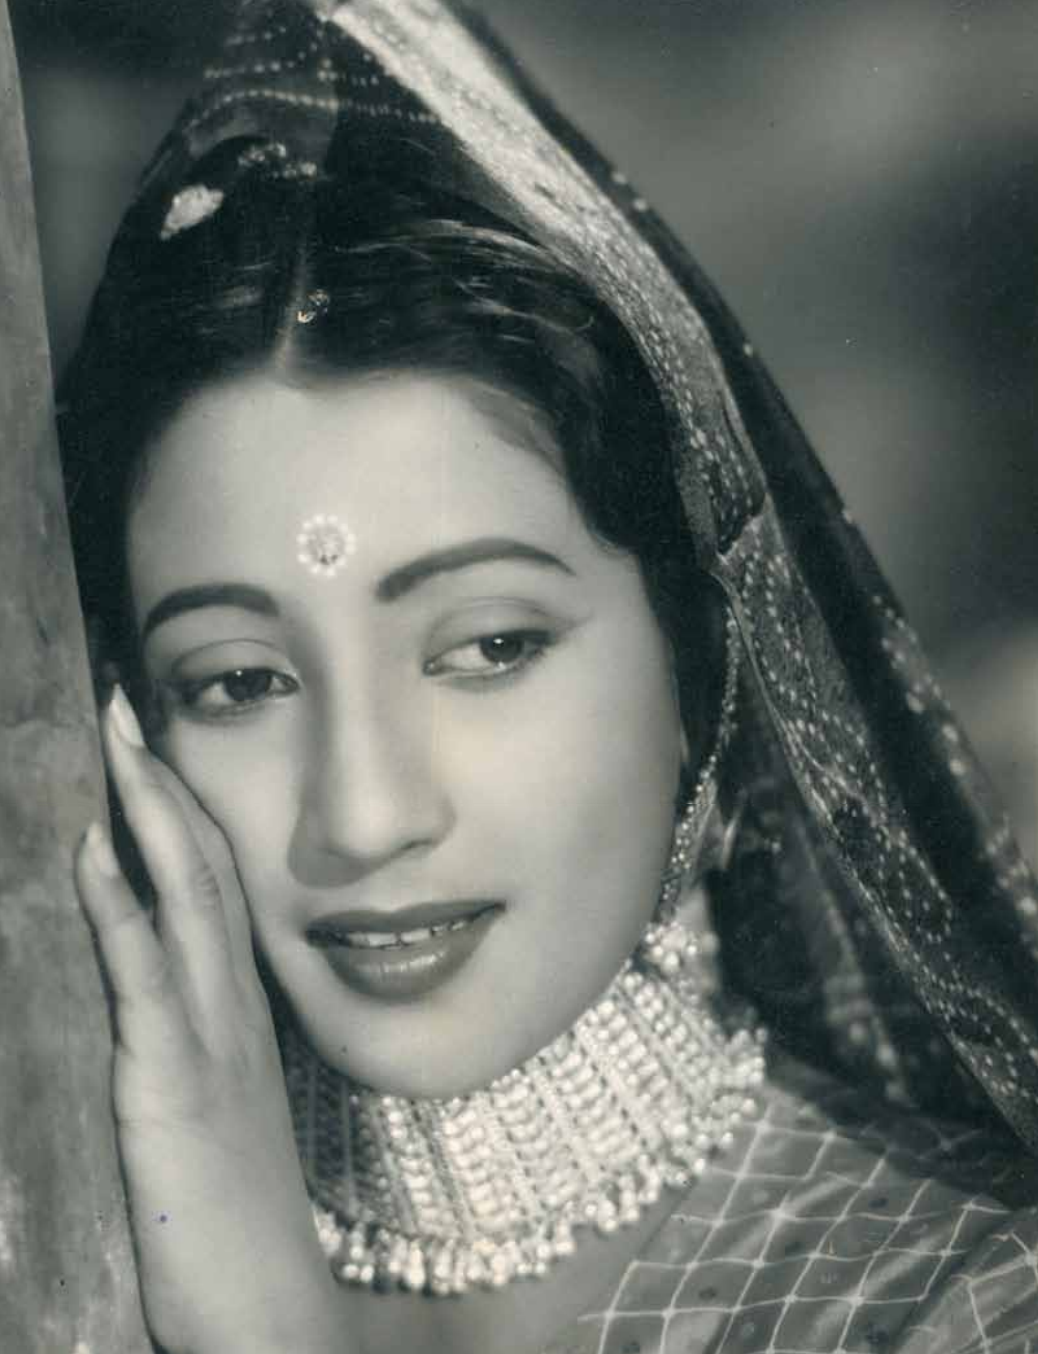 suchitra sen nowsuchitra sen and uttam kumar movies, suchitra sen, suchitra sen biography, suchitra sen songs, suchitra sen old, suchitra sen recent photo, suchitra sen death, suchitra sen images, suchitra sen photo, suchitra sen now, suchitra sen house, suchitra sen hot, suchitra sen songs free download, suchitra sen hindi songs, suchitra sen height, suchitra sen personal life